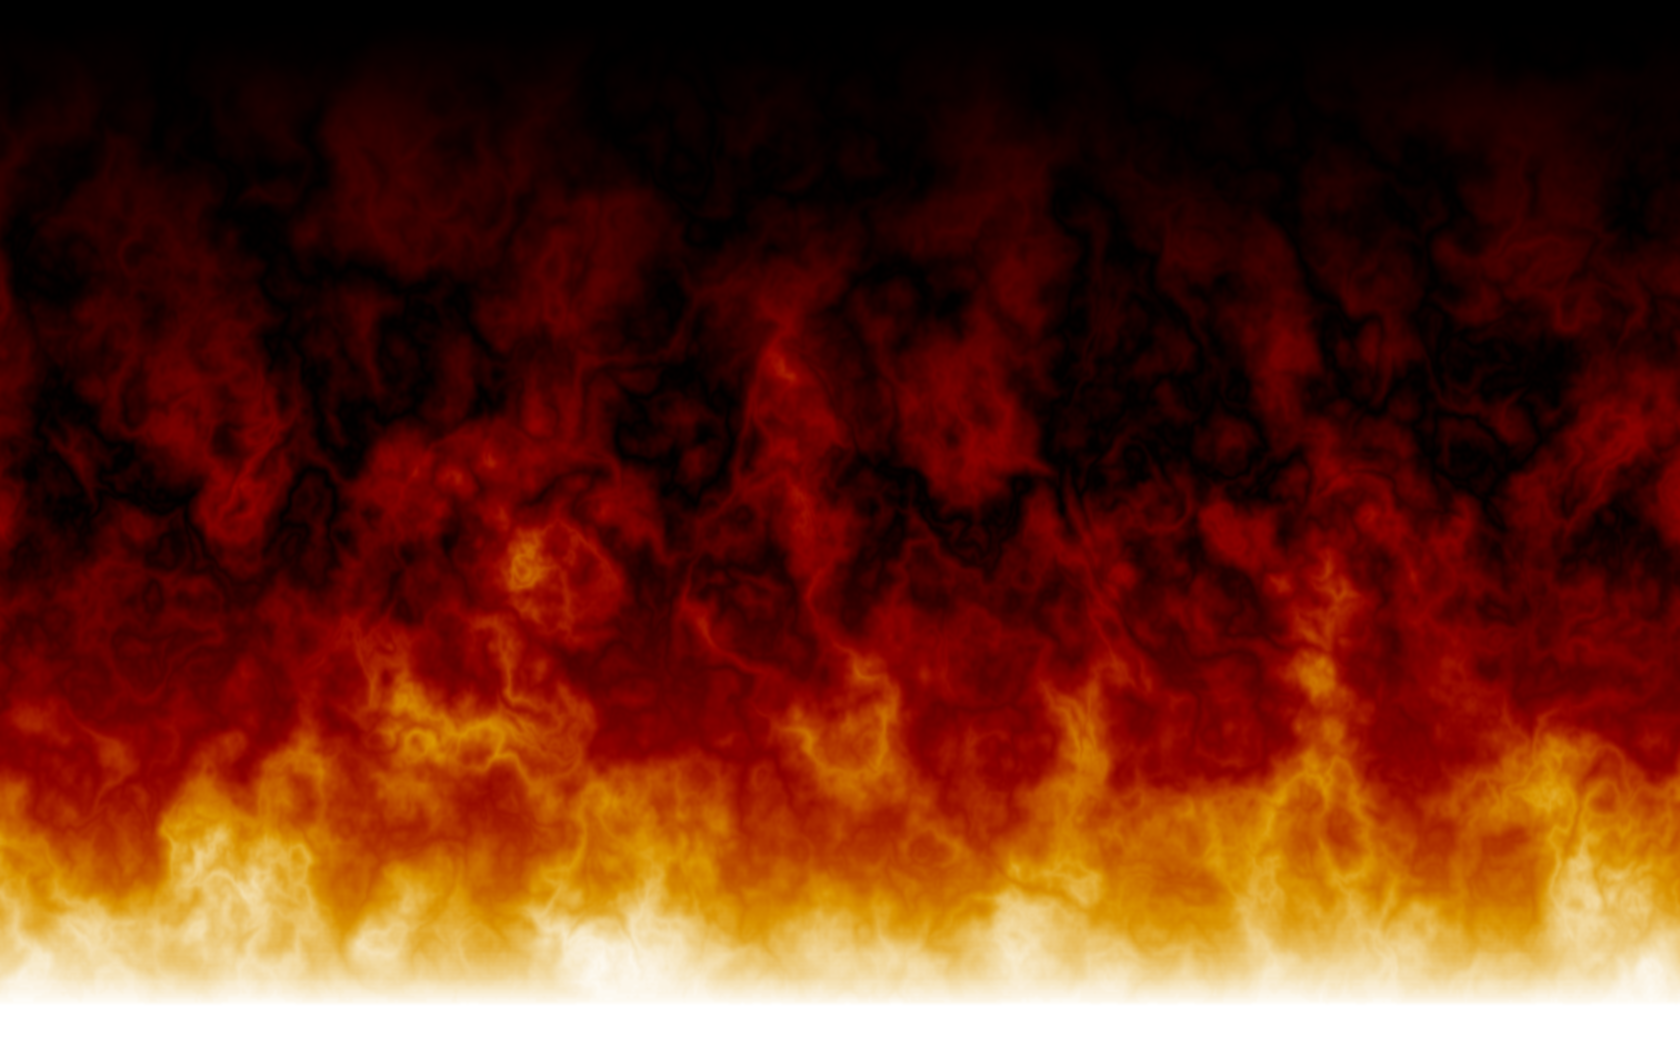 Fire Wallpaper 1680x1050 39766